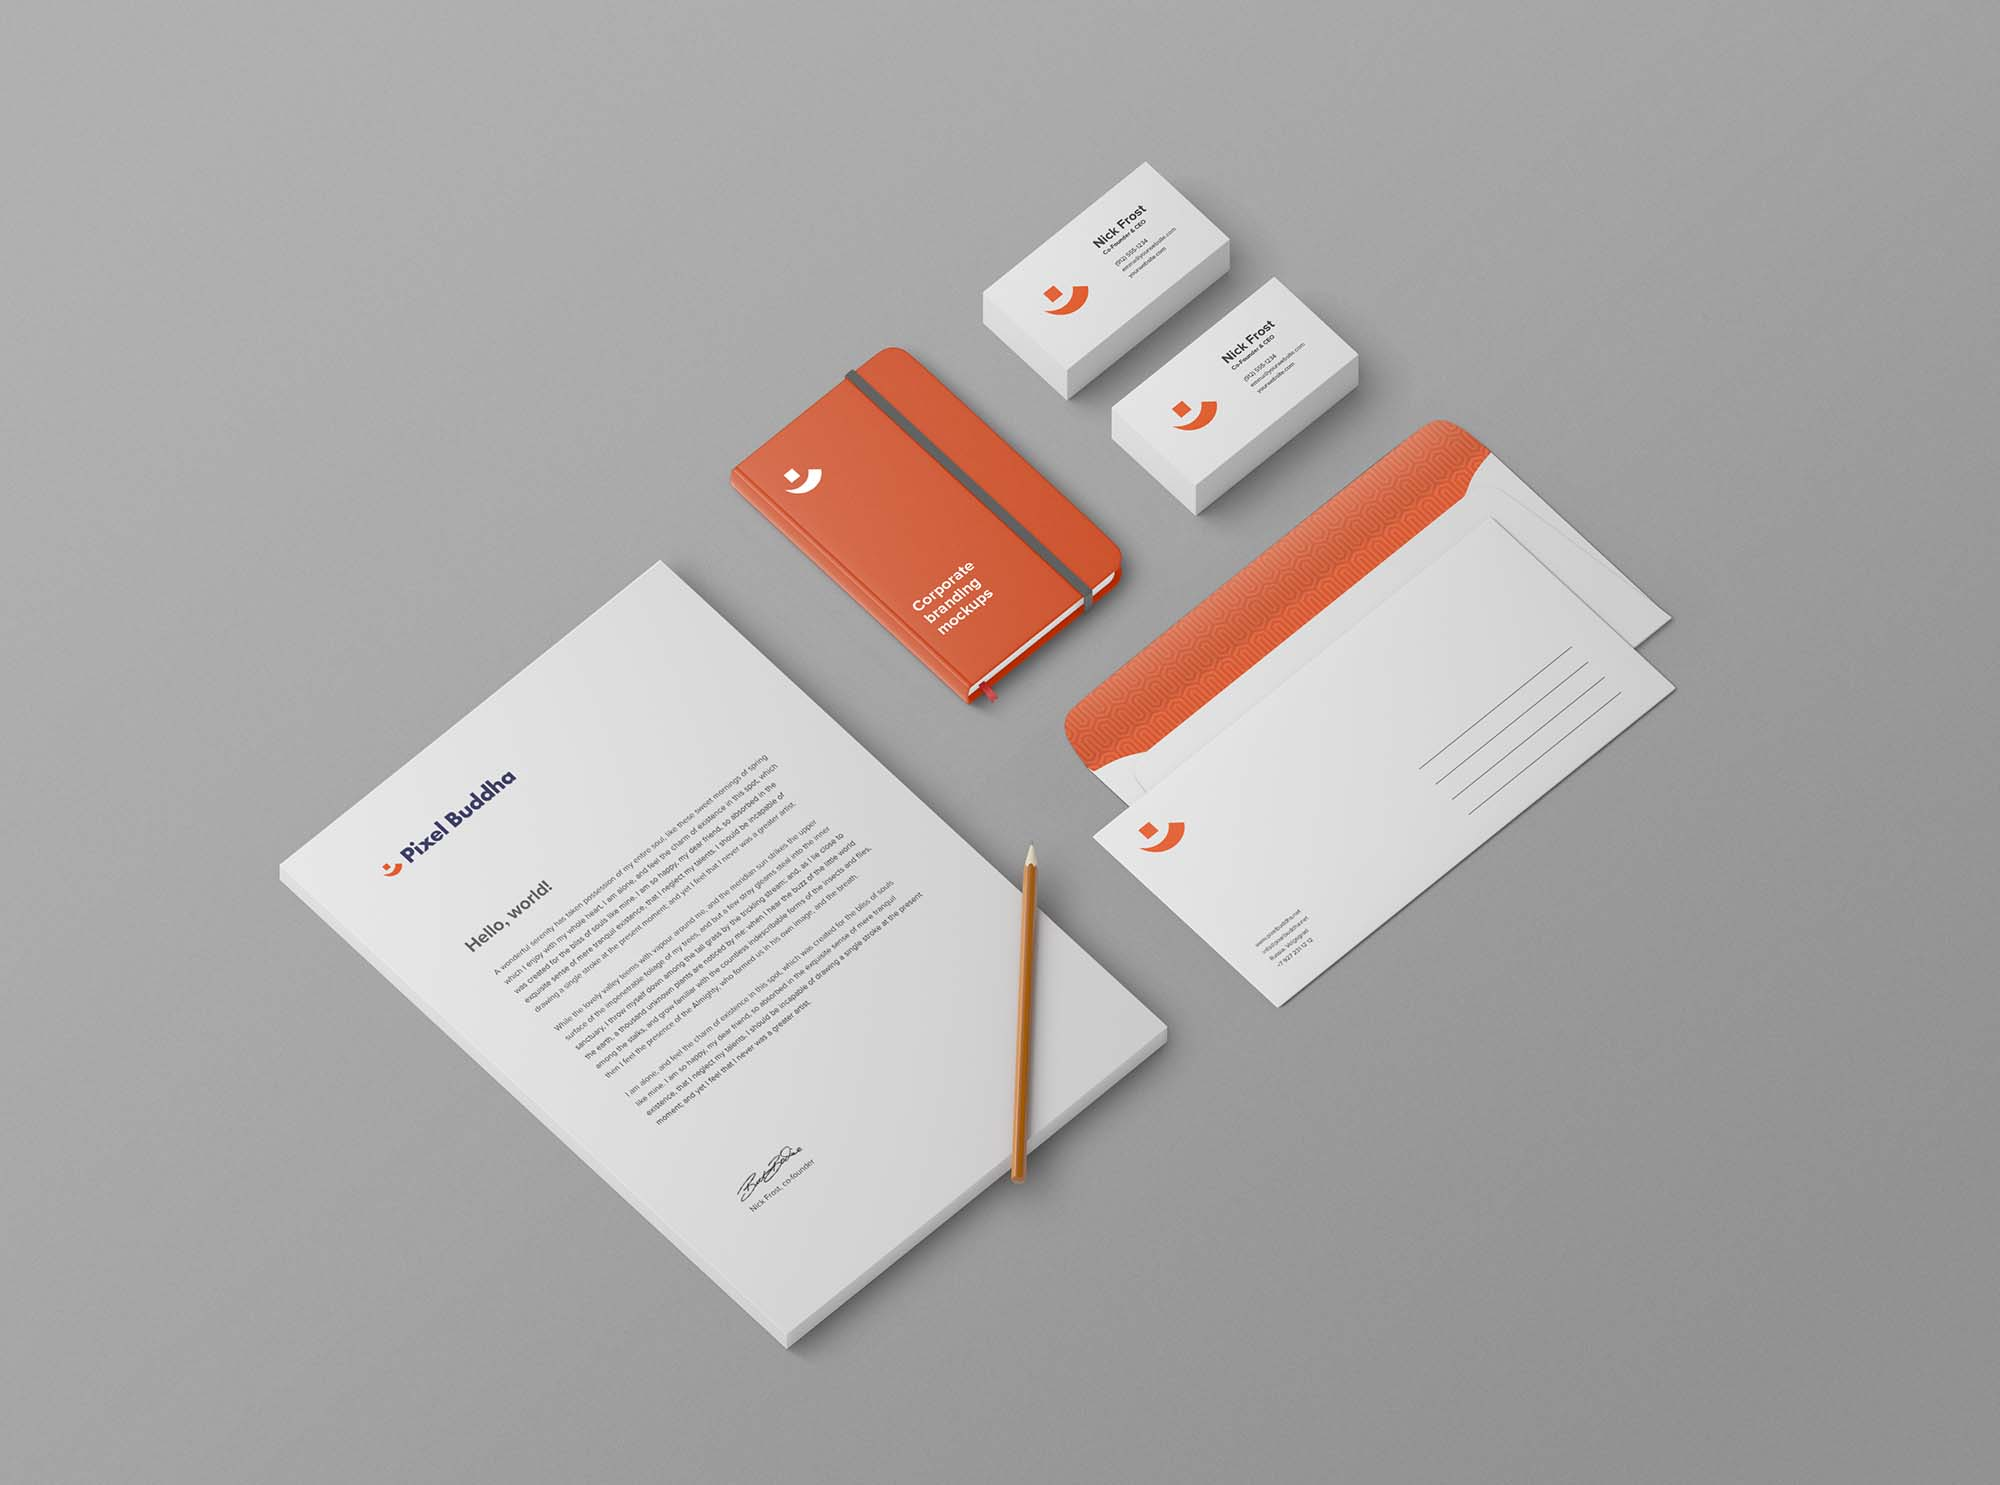 Perspective Stationery Mockup